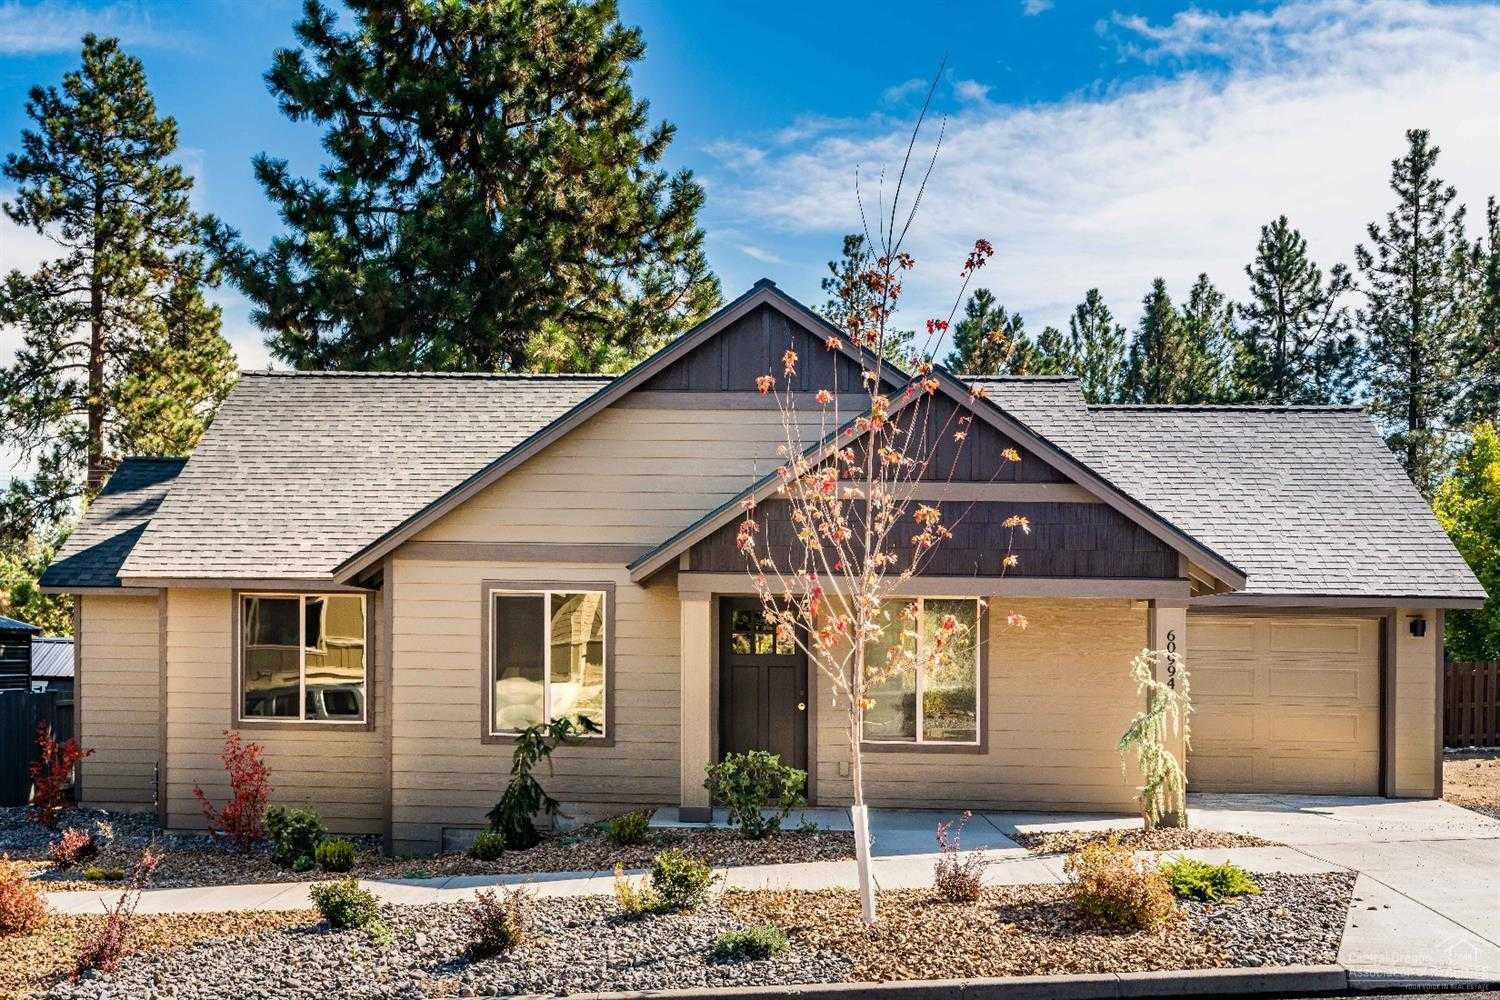 $339,990 - 2Br/2Ba -  for Sale in Bend